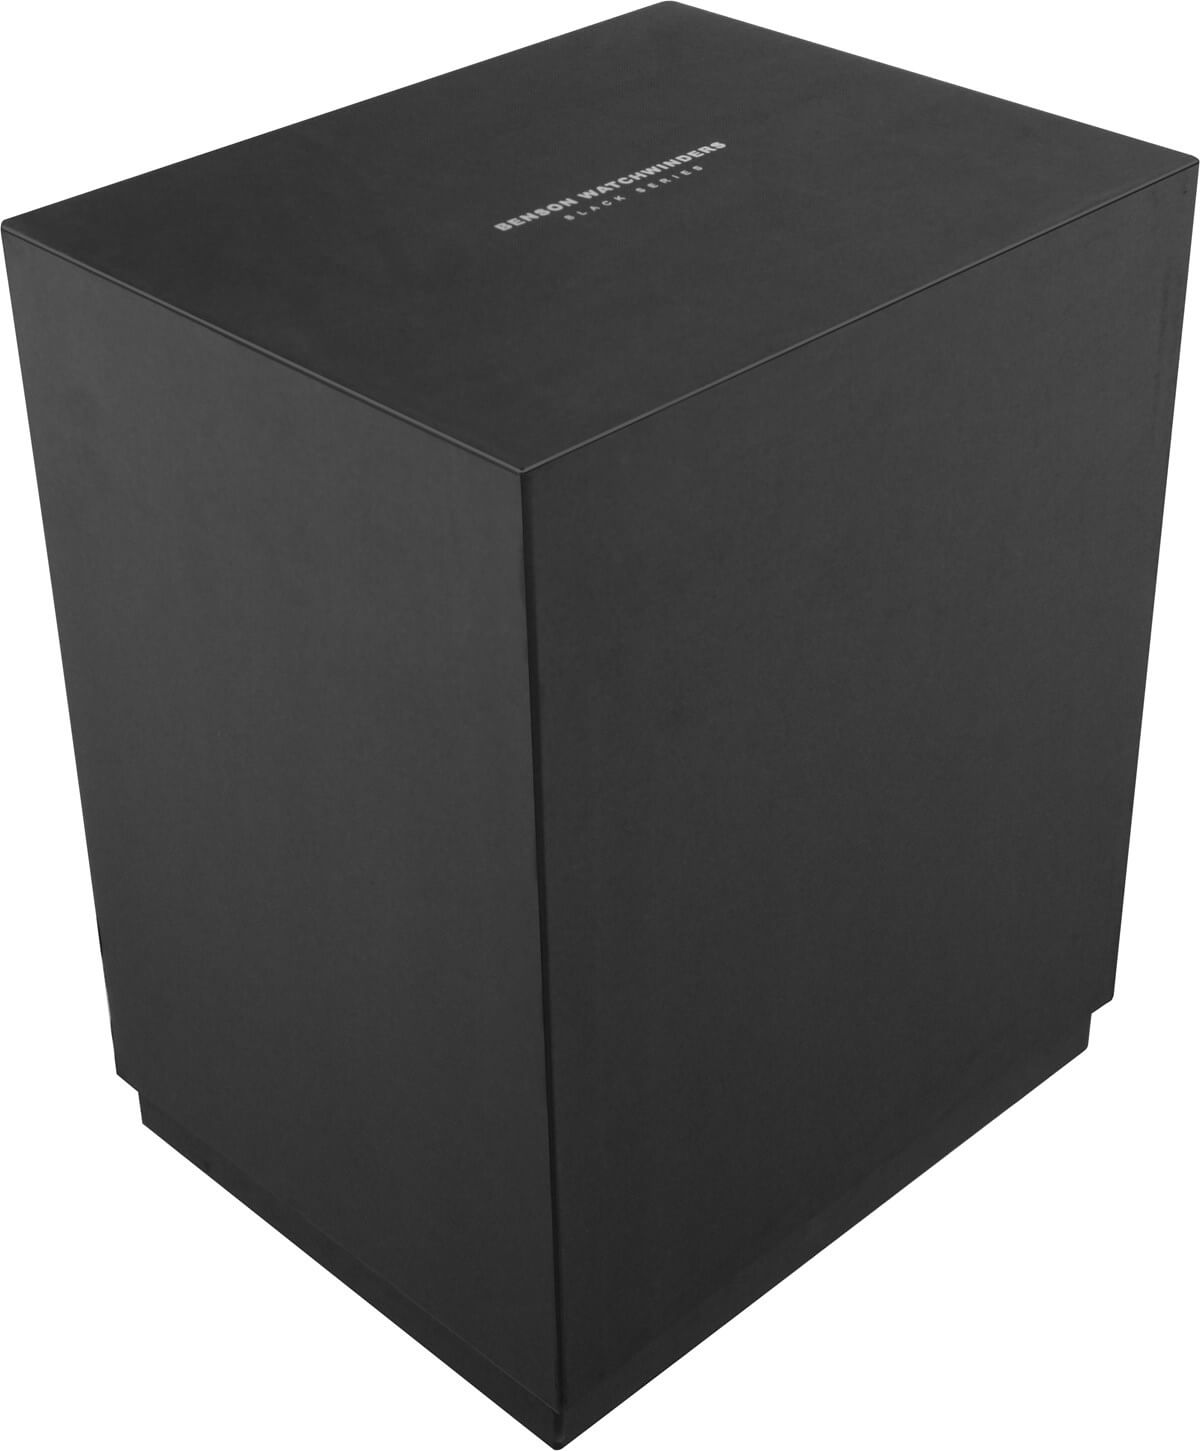 Benson Black Series 4.17.BR Limited Edition